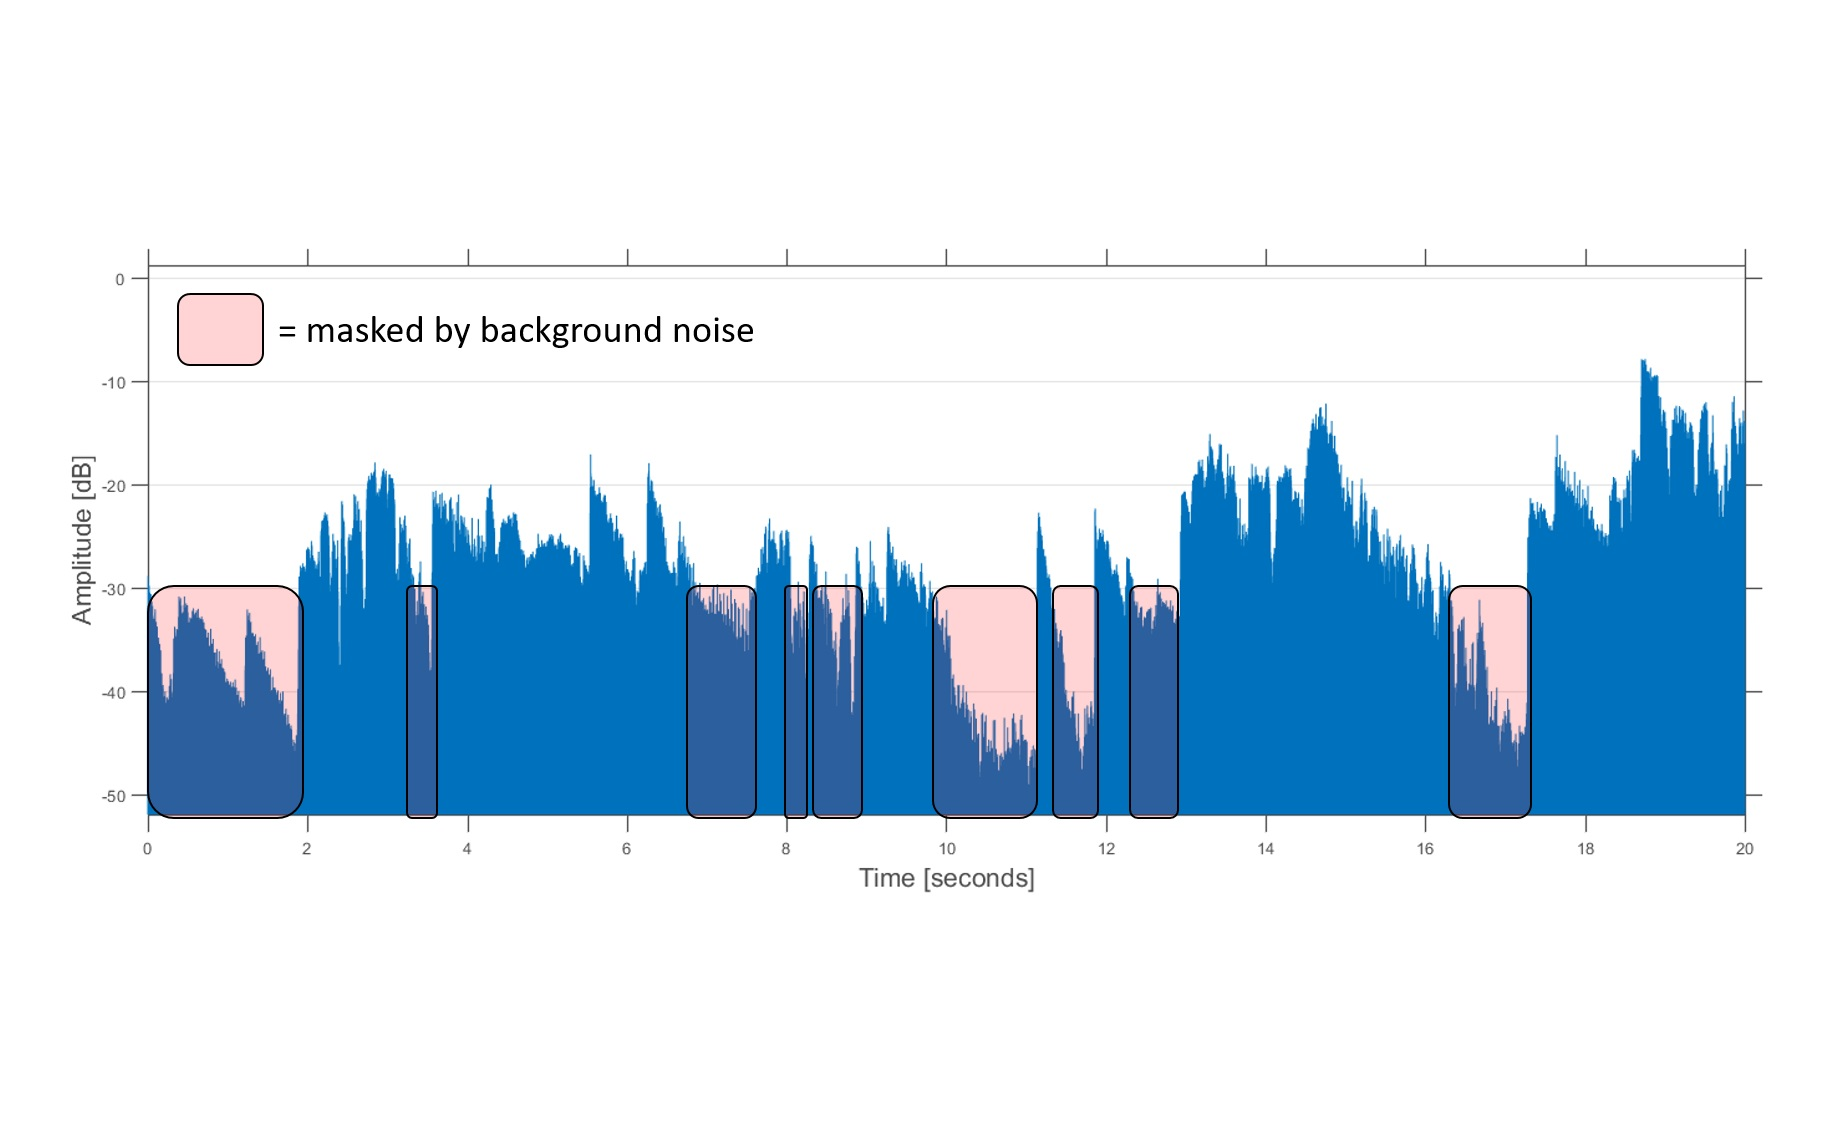 Figure 2: In a high-noise environment, an audio signal with a large dynamic range will be largely masked by the noise, even at maximum volume.